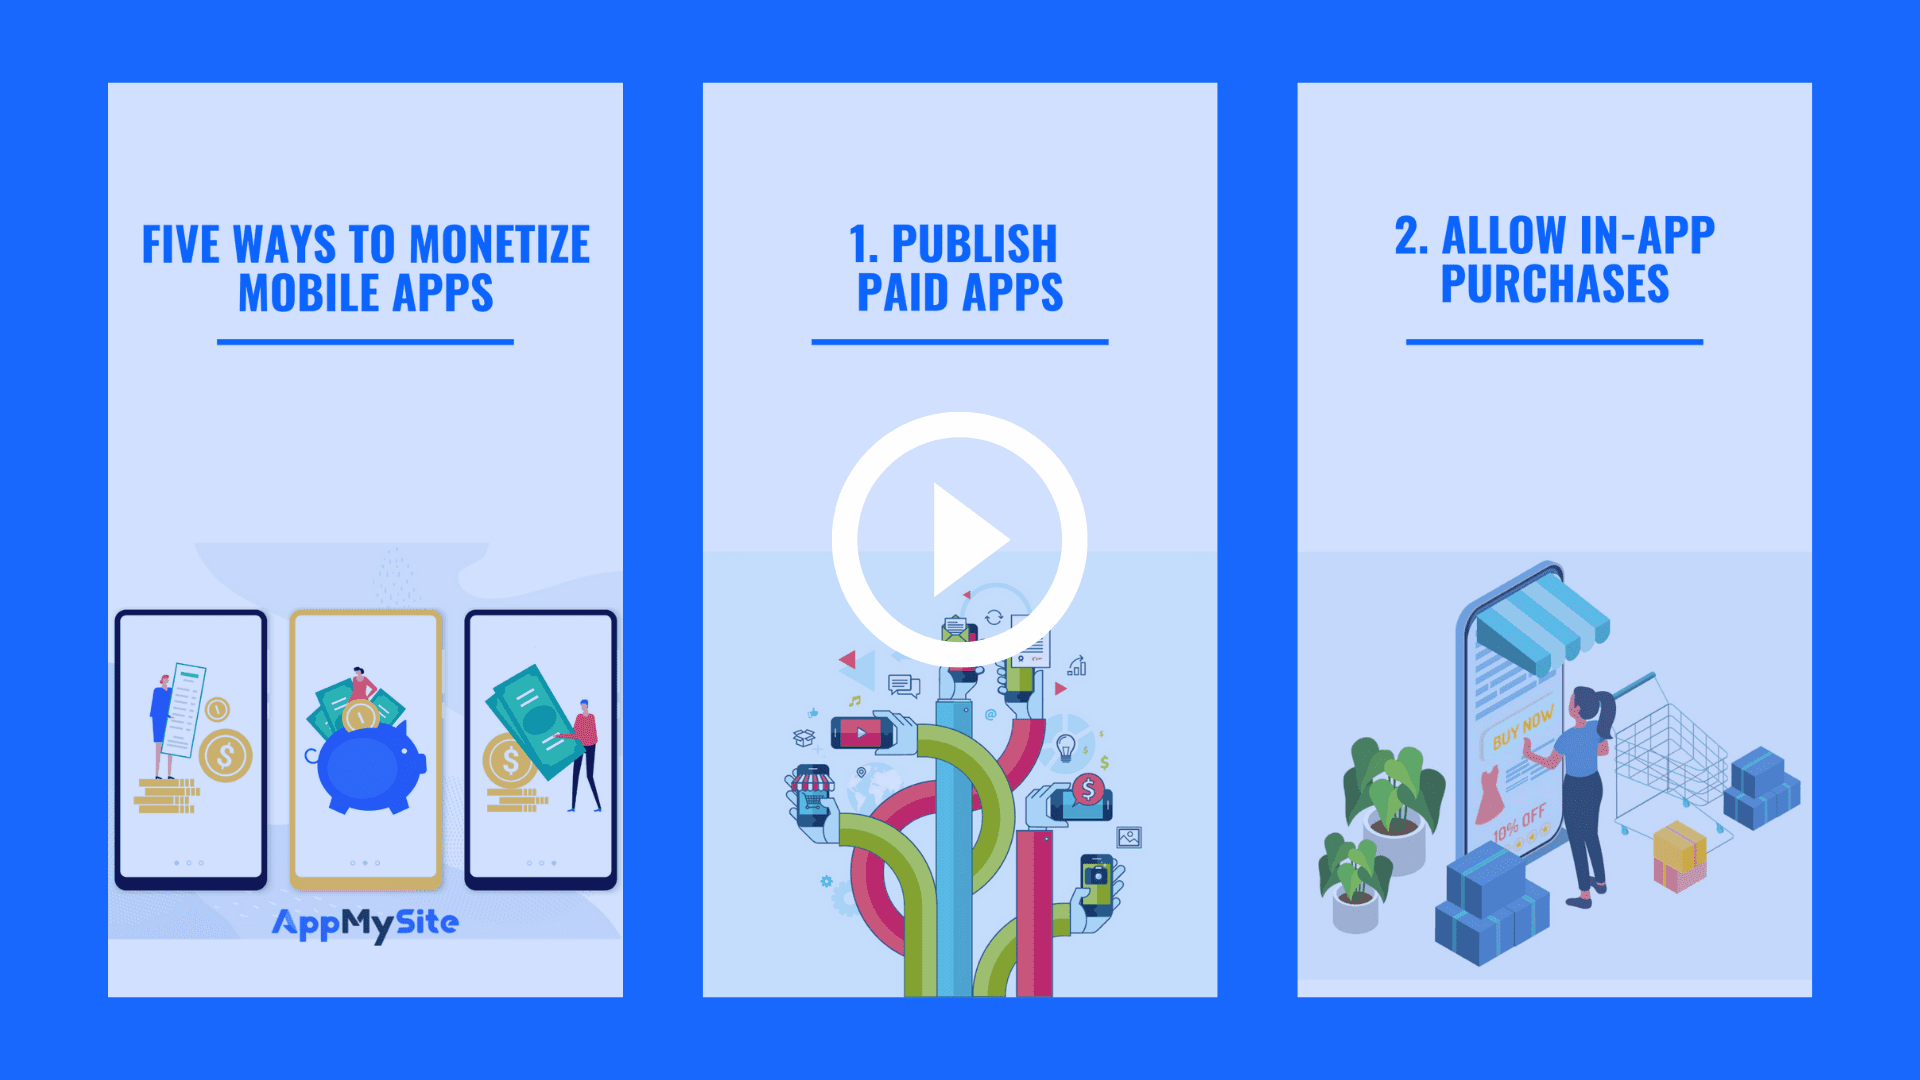 Five ways to monetize mobile apps